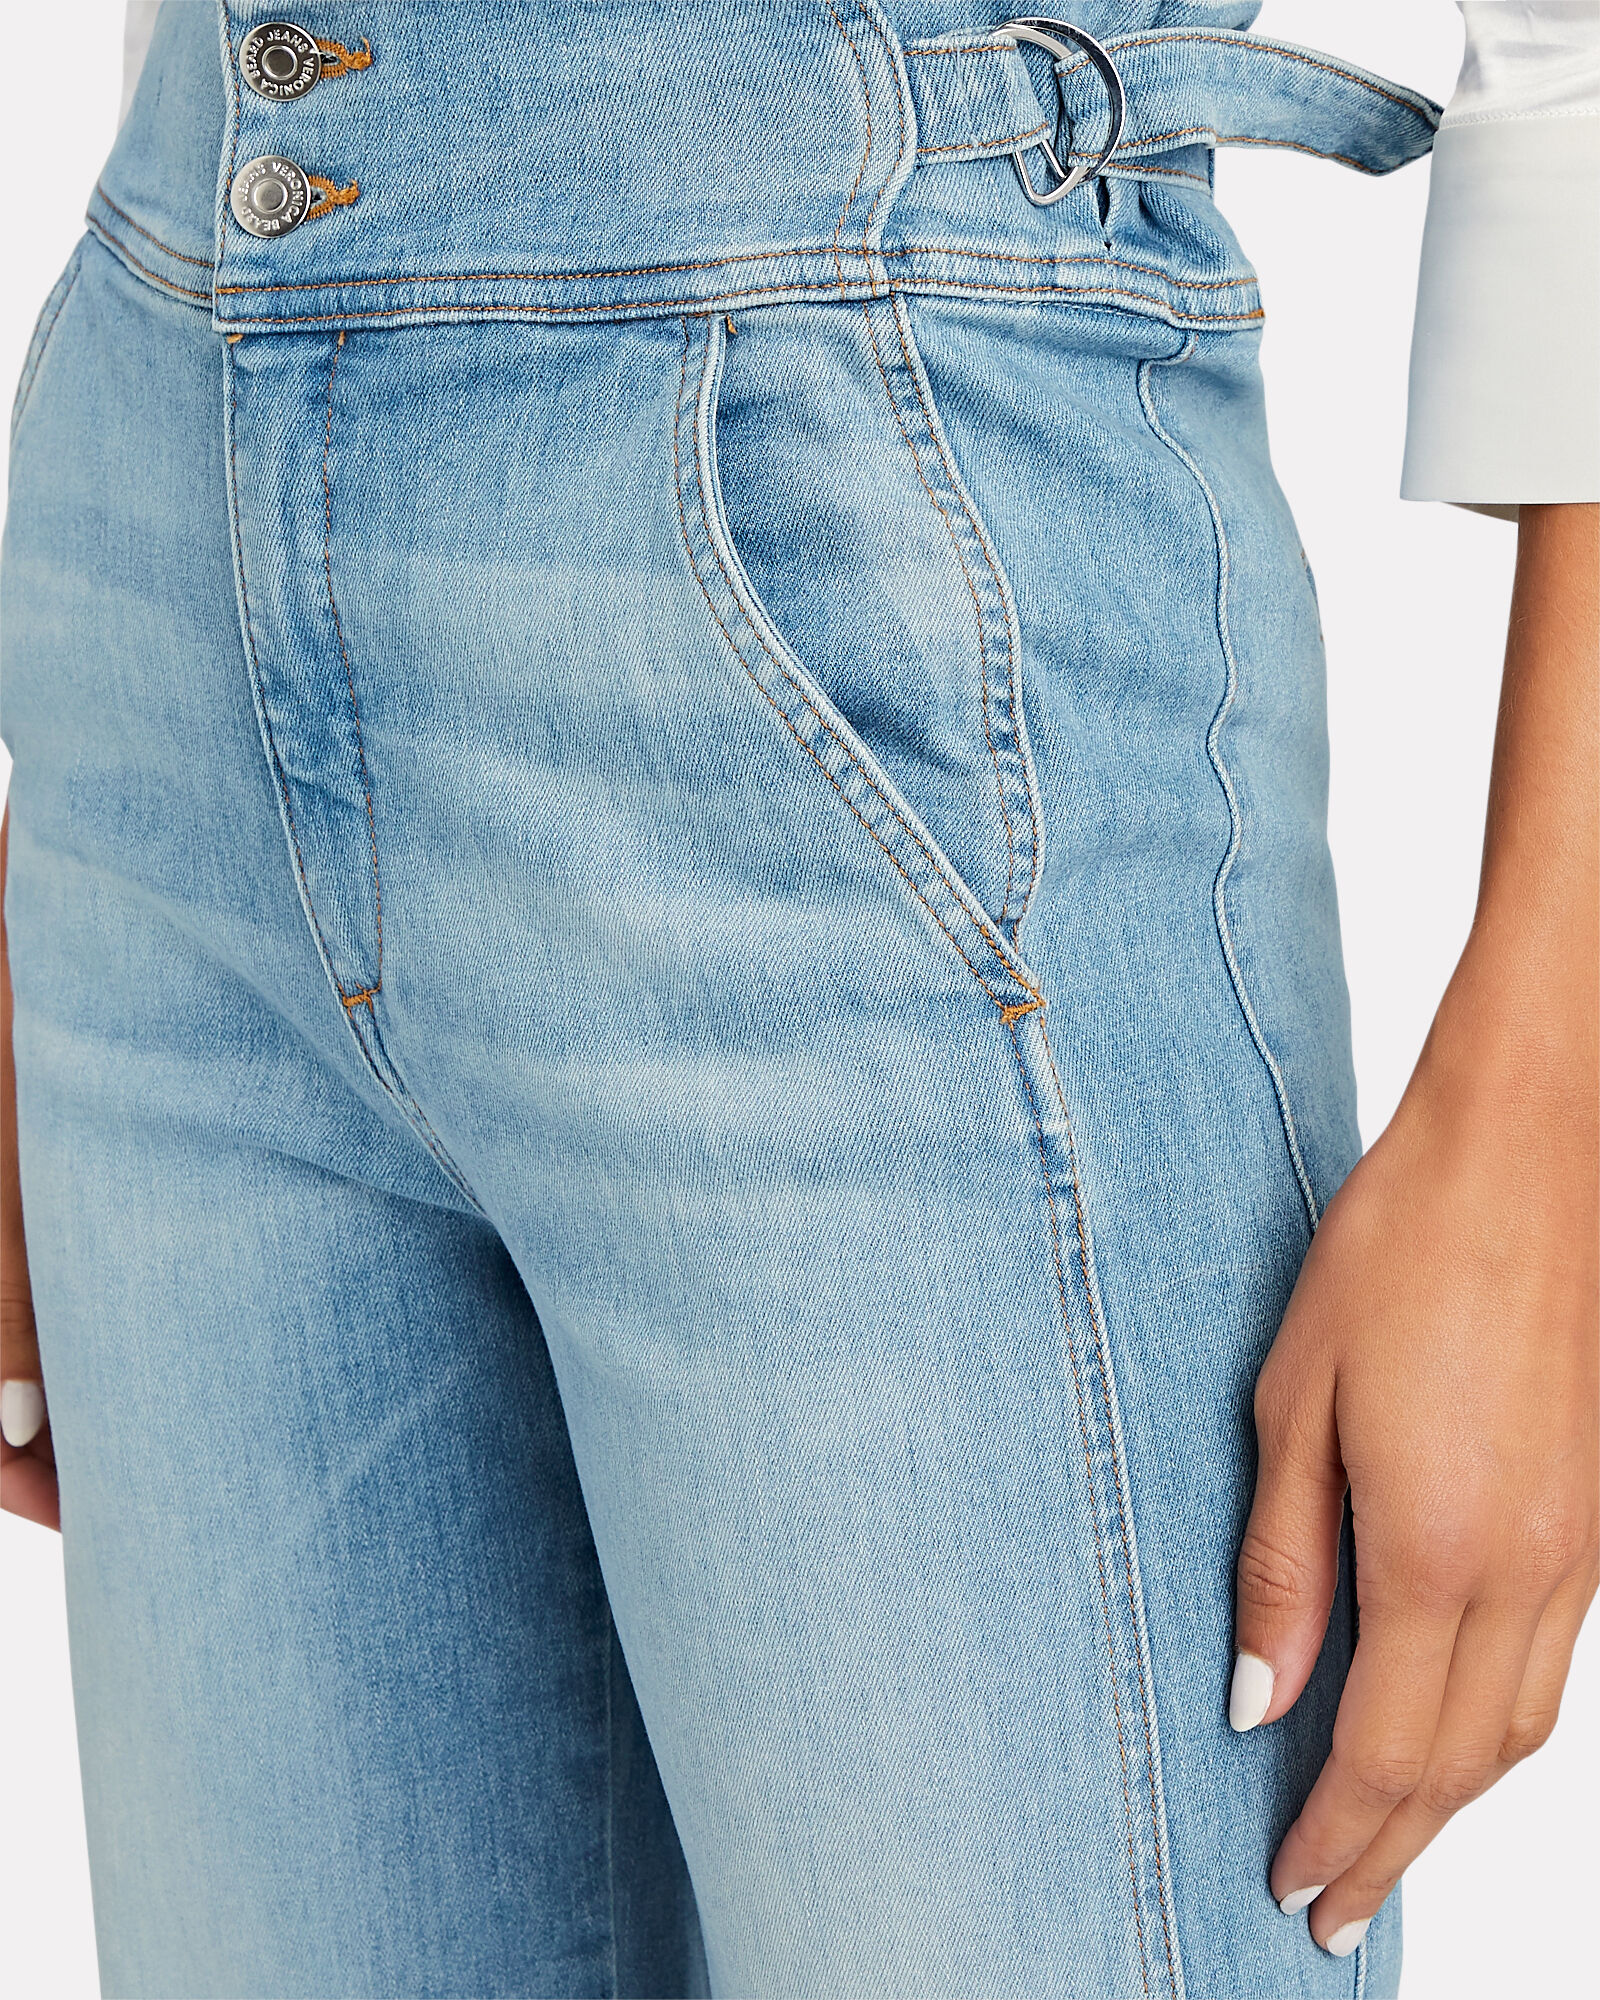 Vira High-Rise Wide-Leg Jeans, DENIM-LT, hi-res